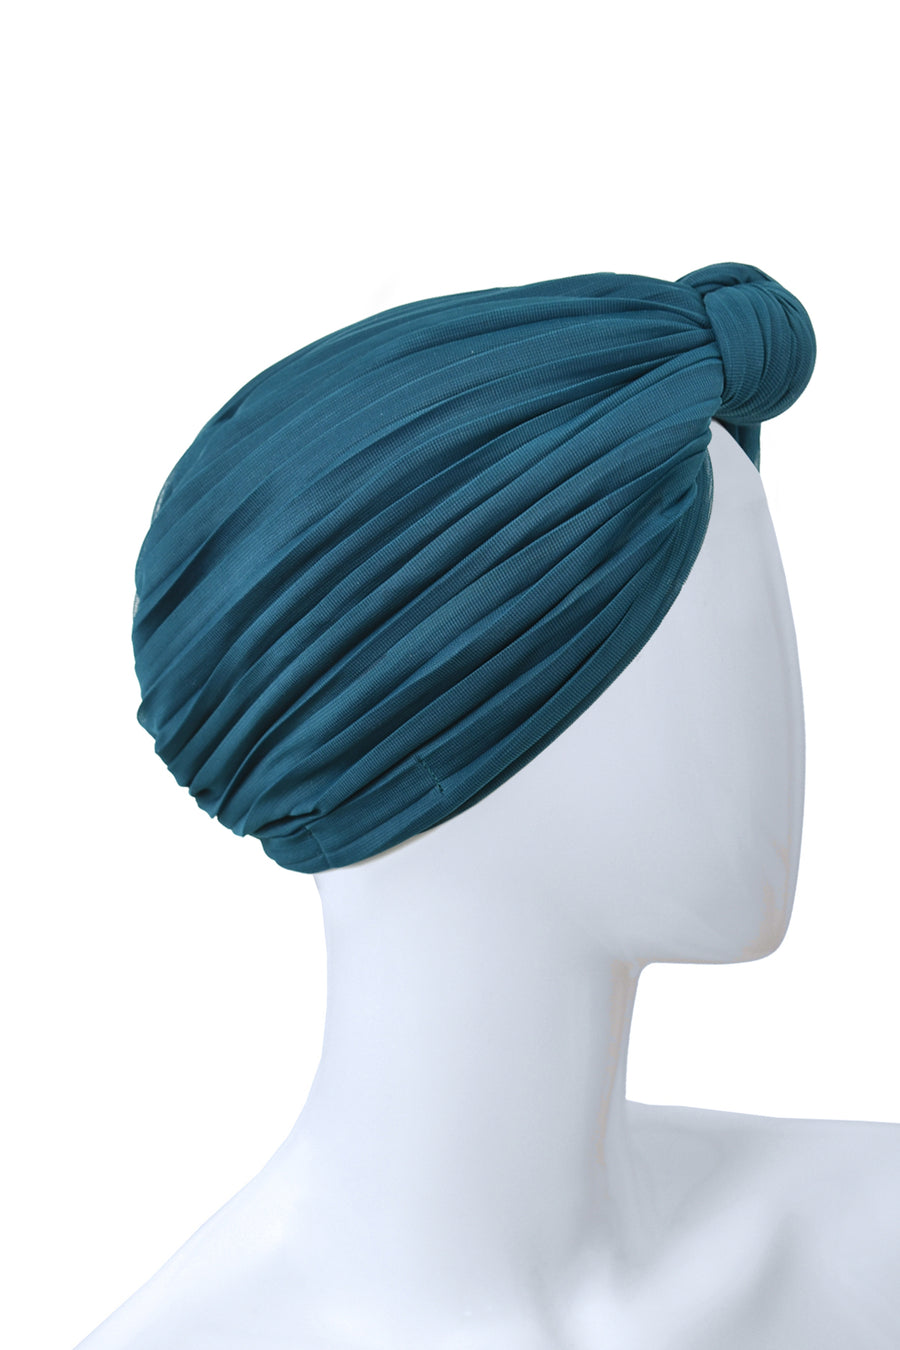 Kleber ! New turban